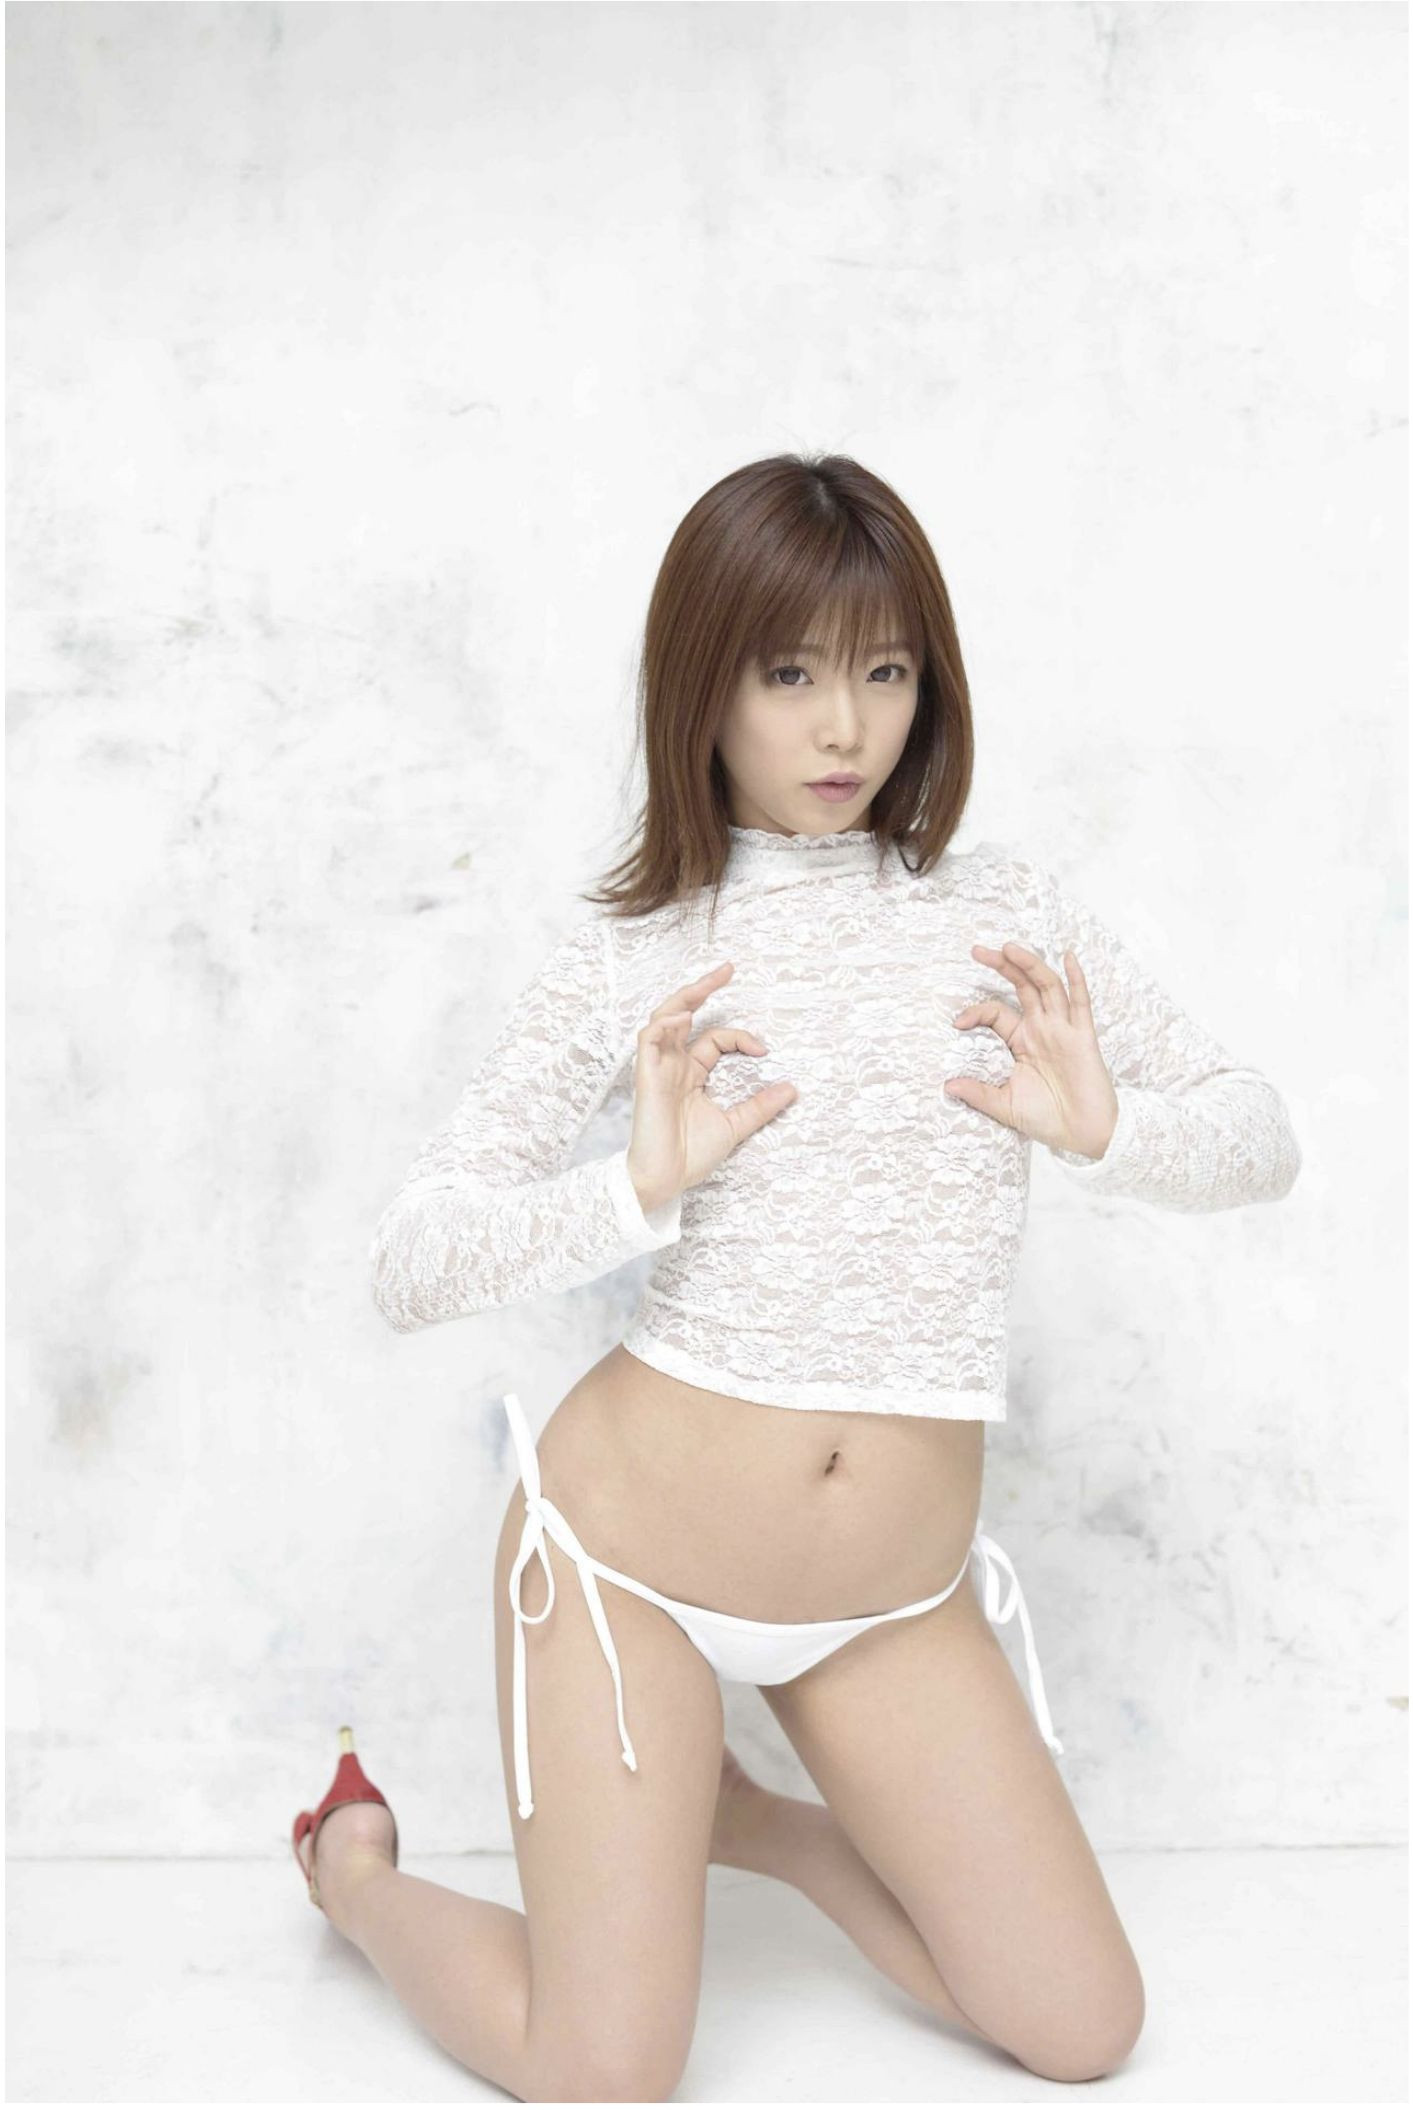 SOFT ON DEMAND GRAVURE COLLECTION 紗倉まな04 photo 031